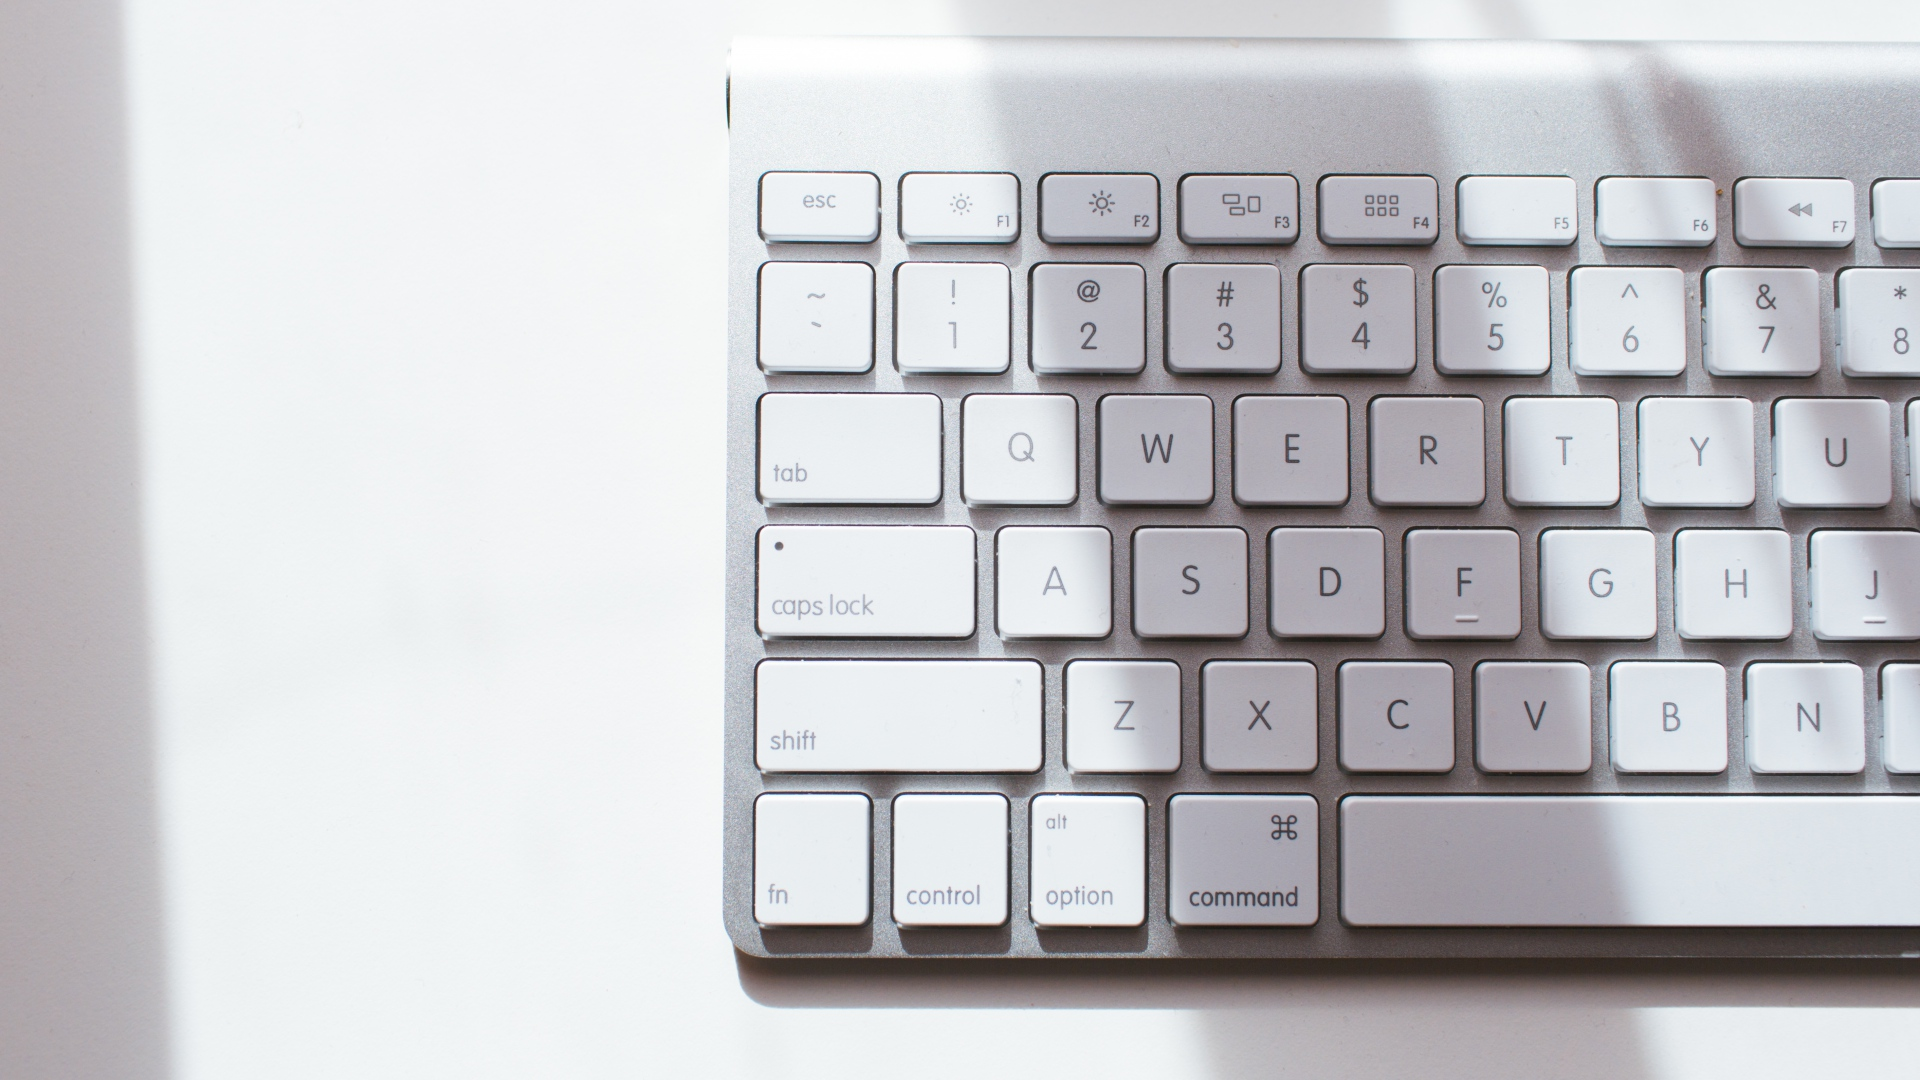 Apple Keyboard Hd Computer 4k Wallpapers Images Backgrounds Photos And Pictures